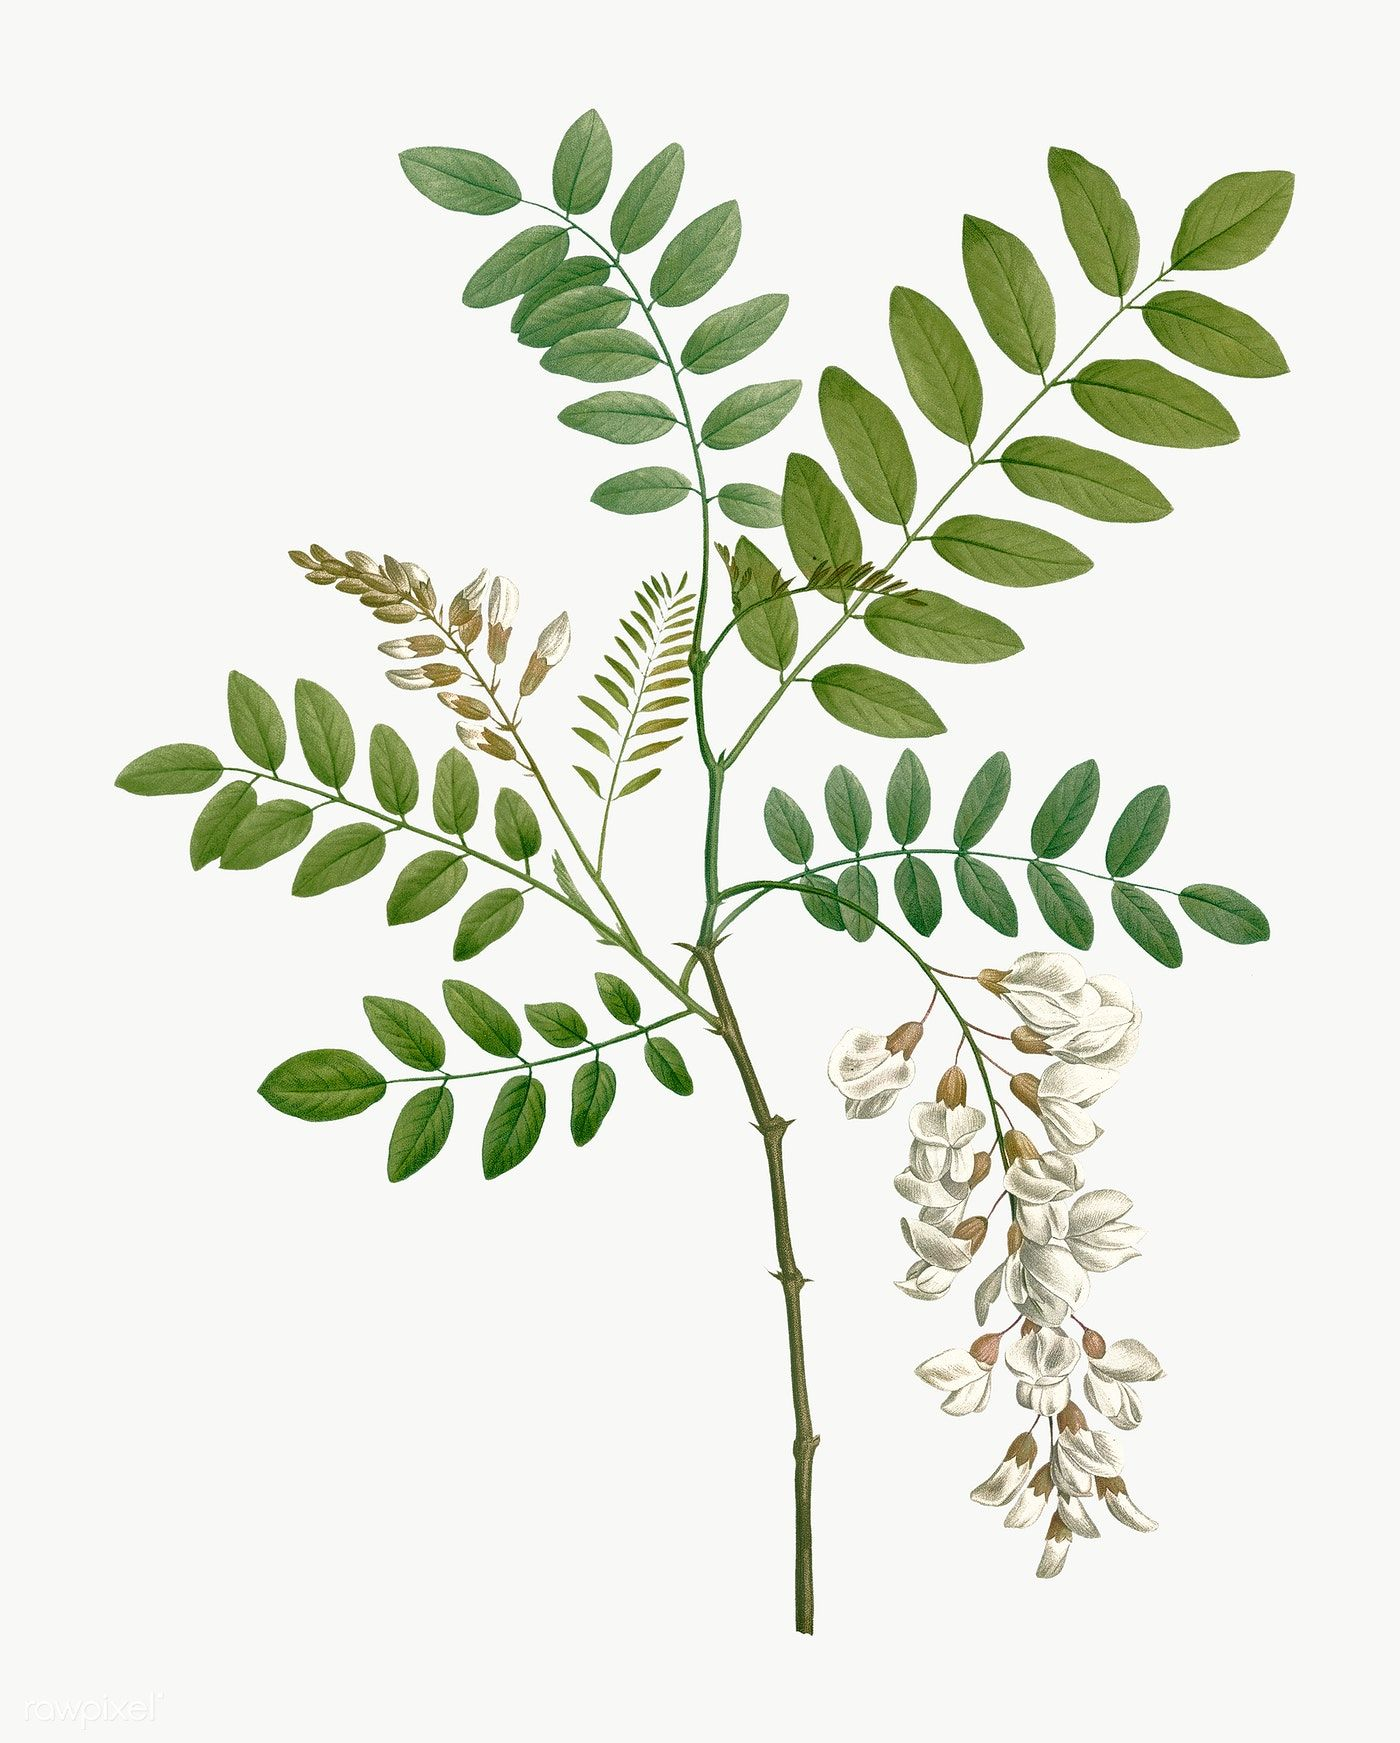 Vintage Acacia Plant Transparent Png Free Image By Rawpixel Com Phlox Flowers Flower Illustration Small White Flowers